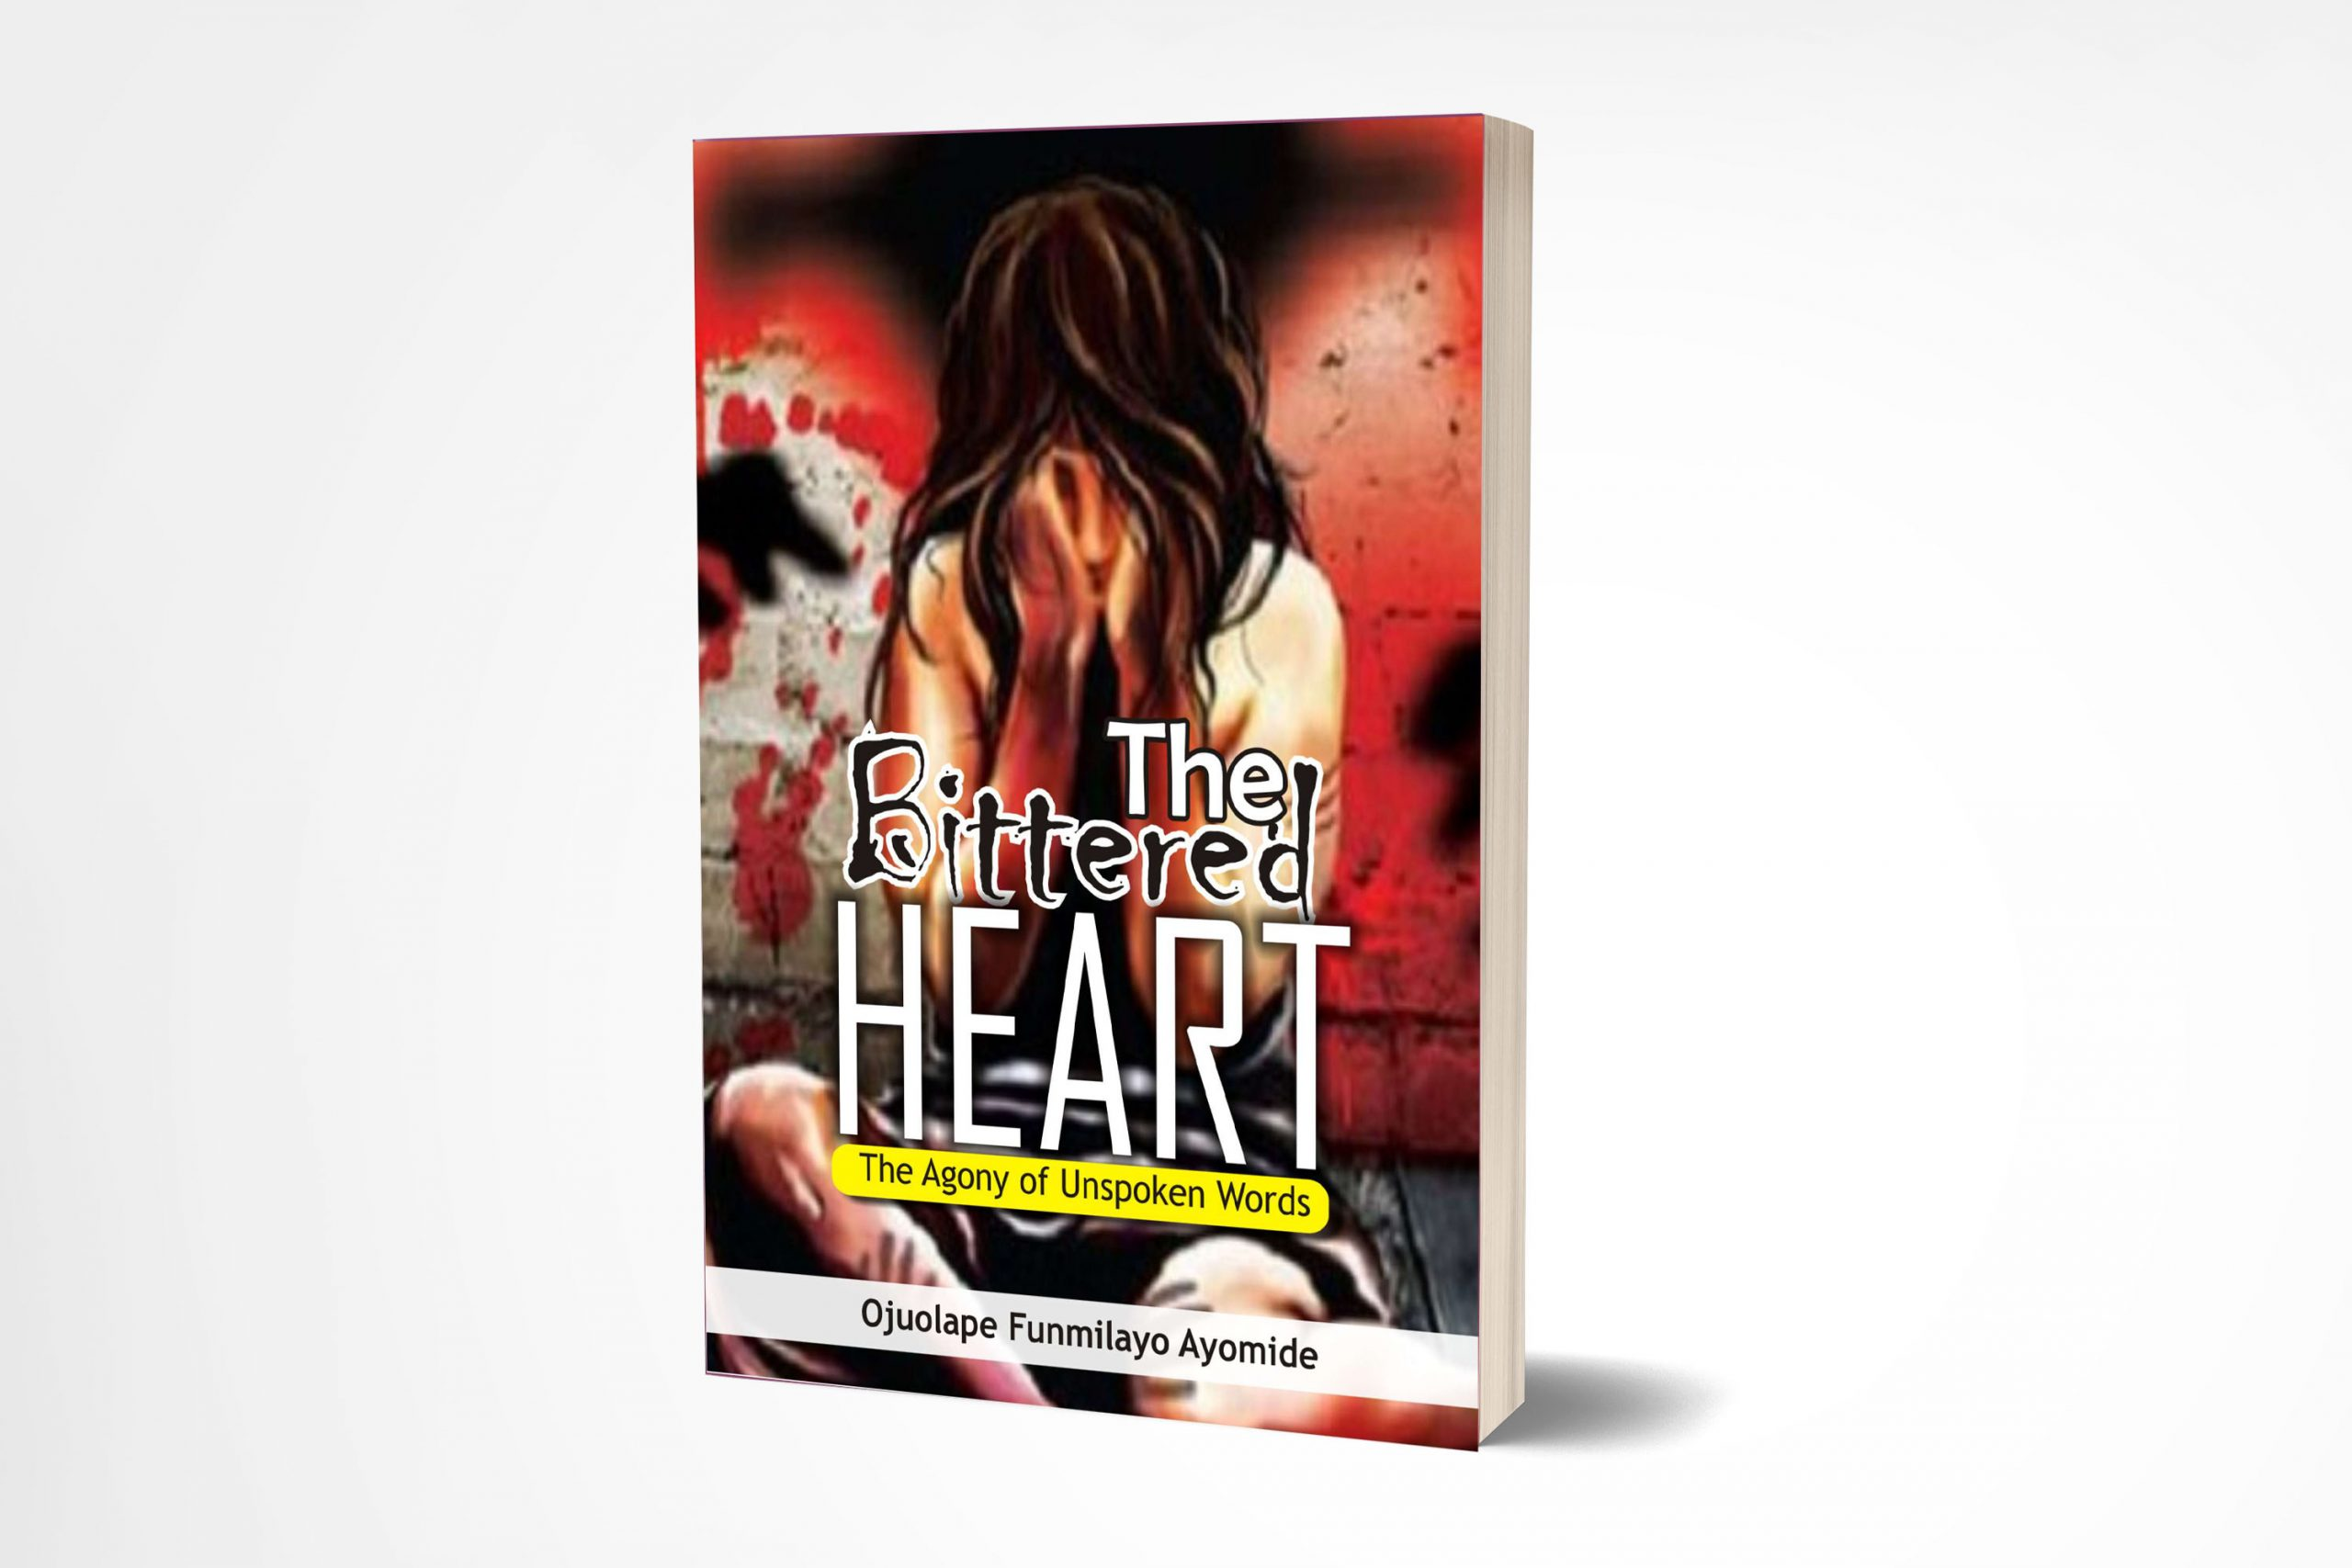 The Bittered Heart By Ojuolape Funmilayo